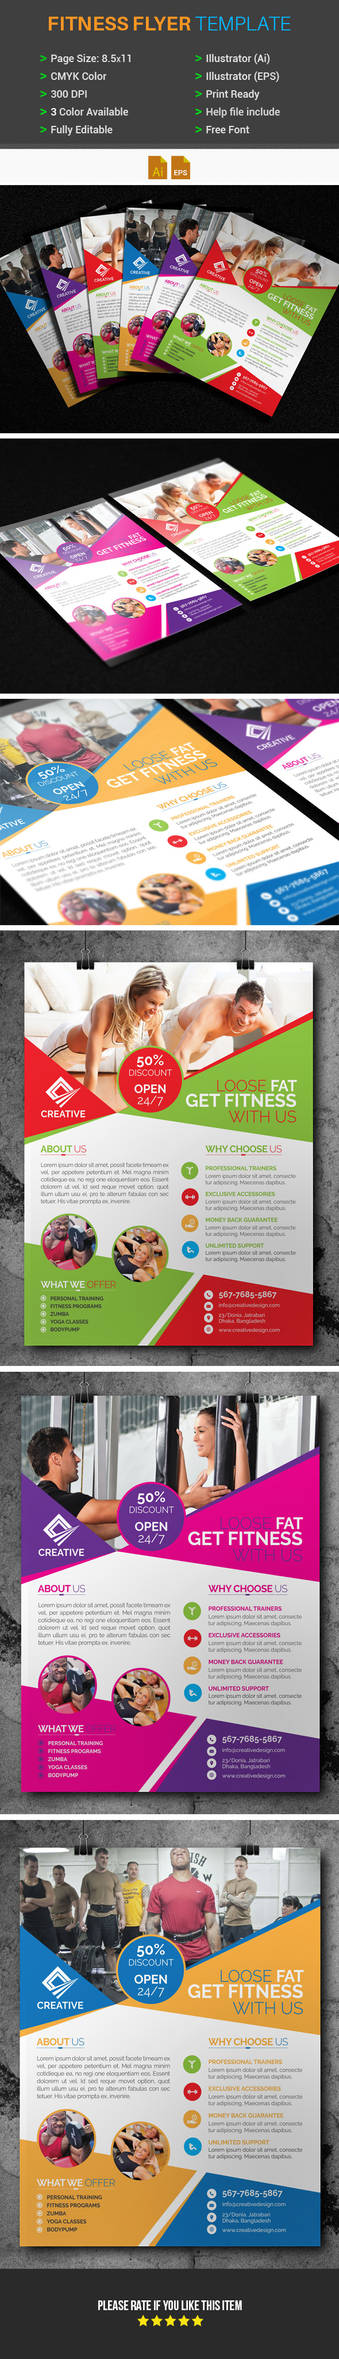 Free Fitness/Gym Flyer Template